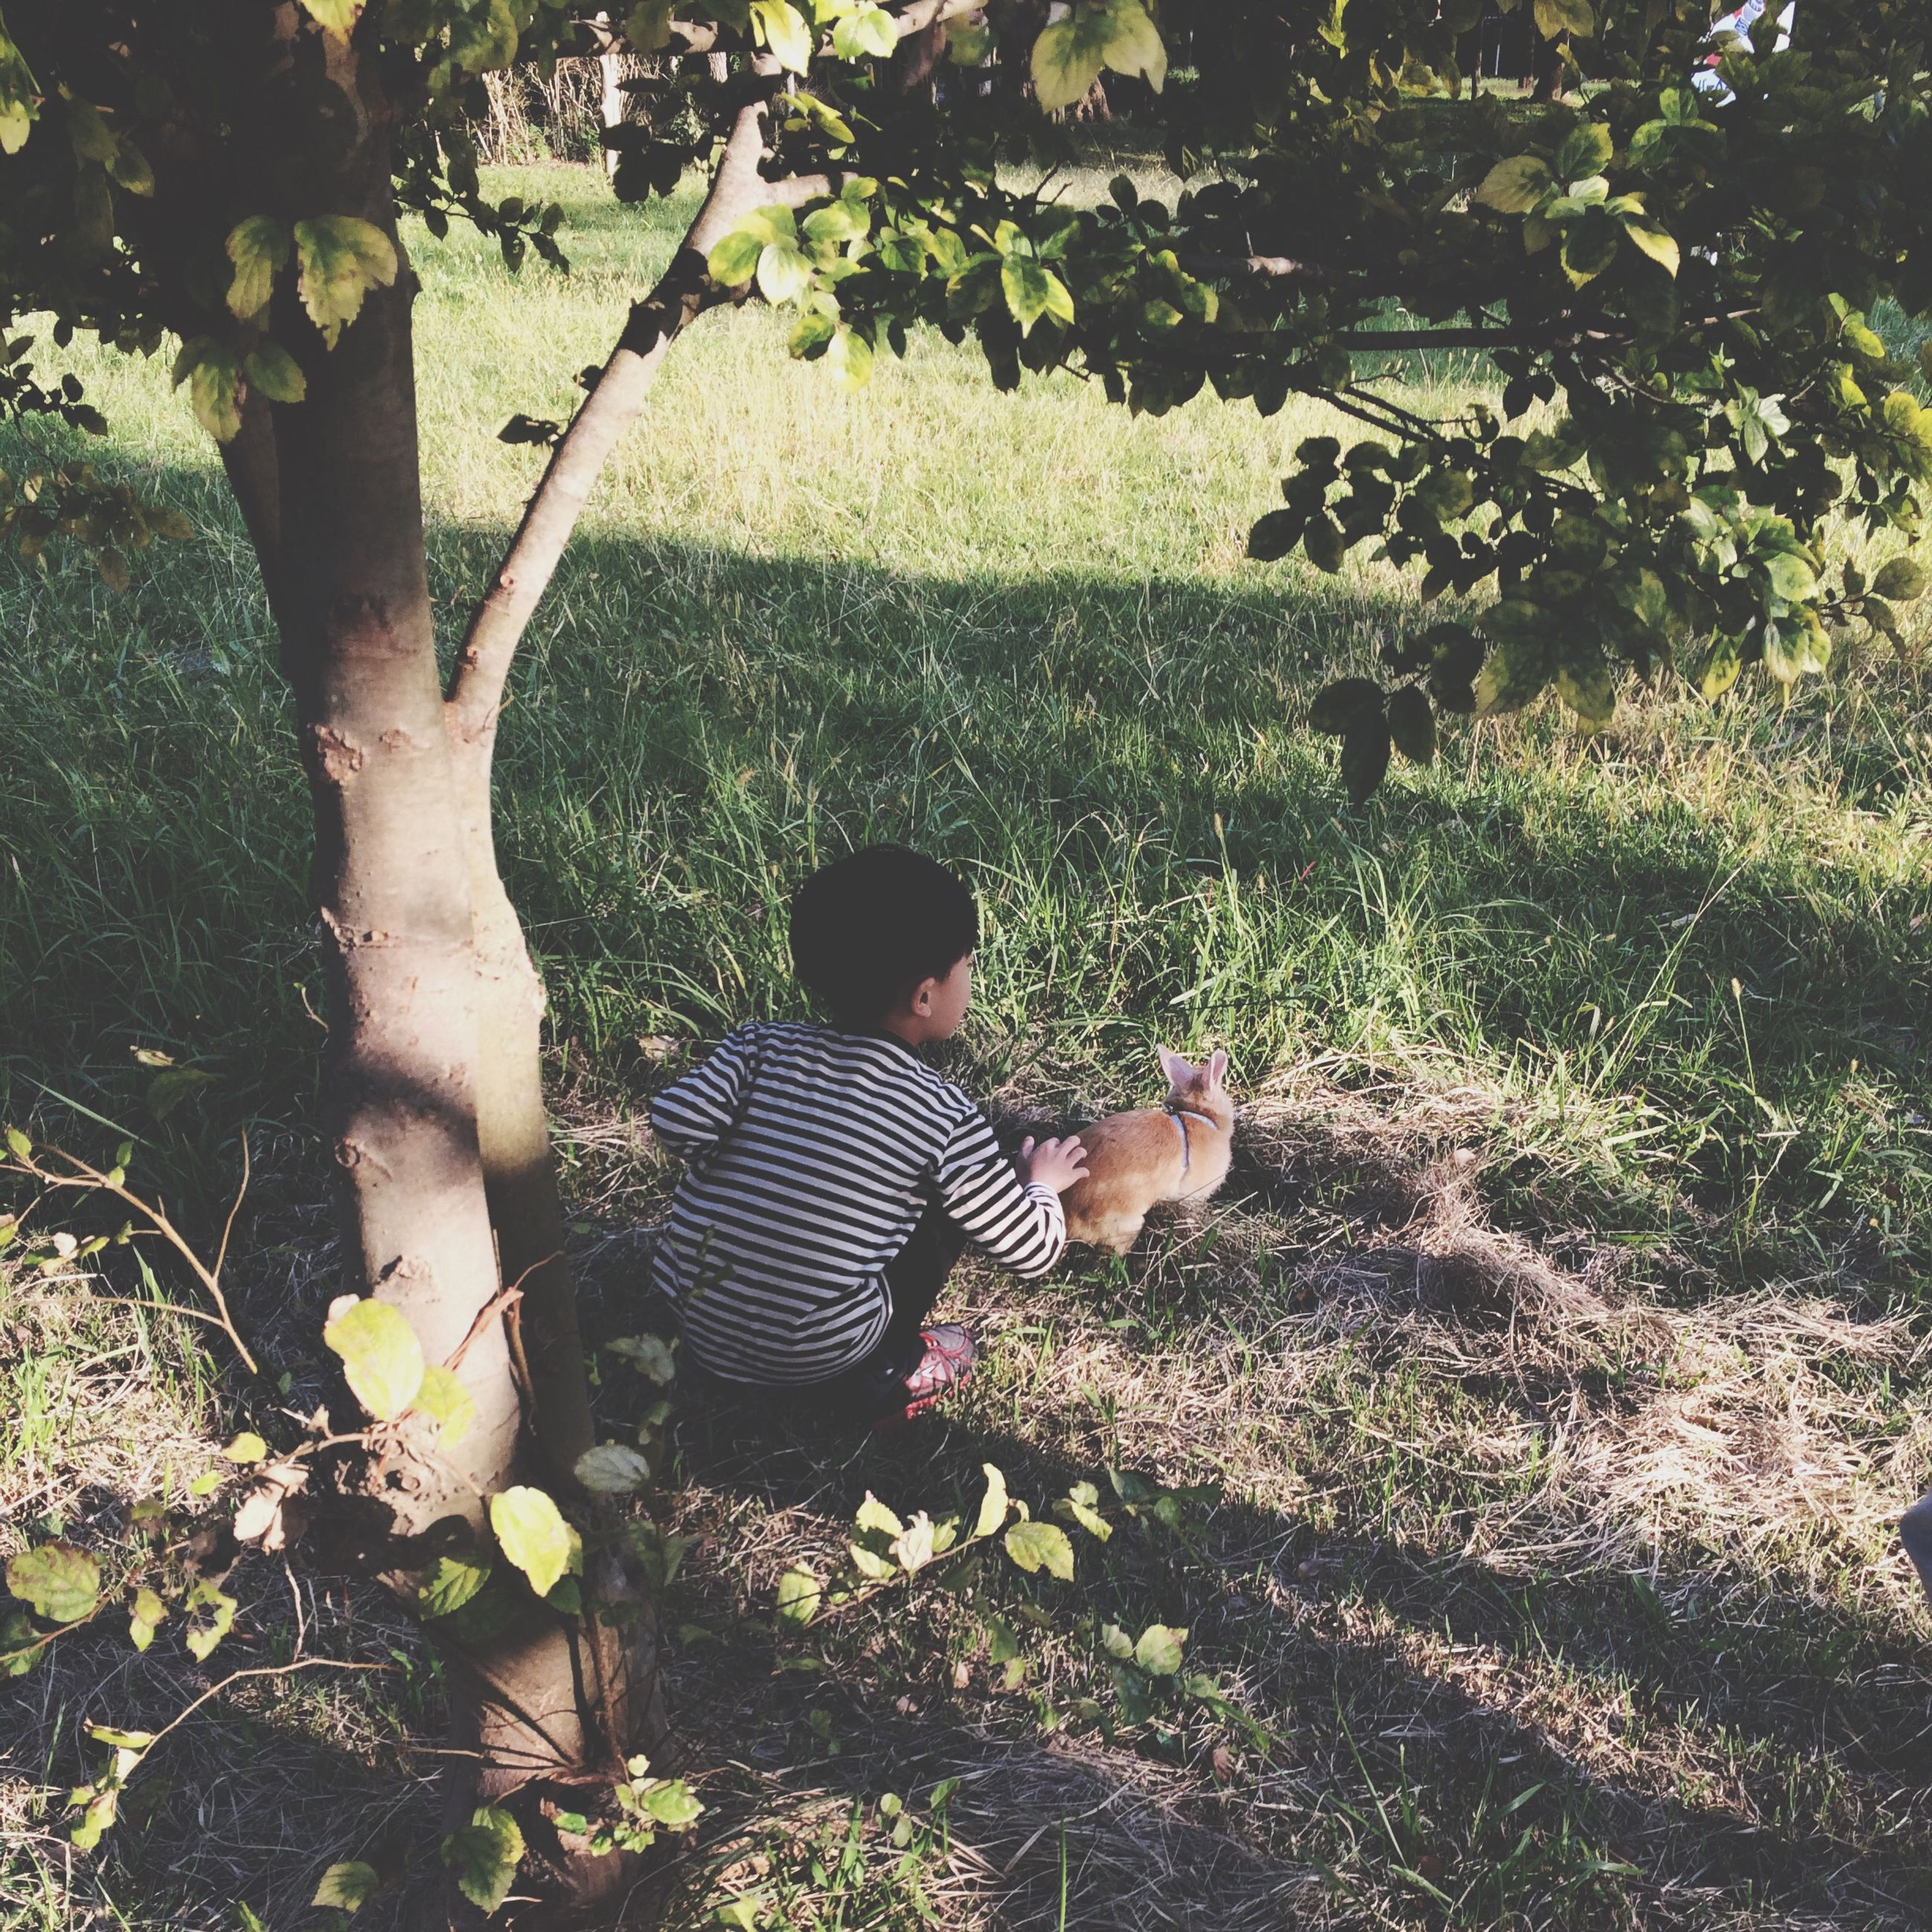 leisure activity, lifestyles, tree, grass, sunlight, growth, full length, childhood, casual clothing, plant, park - man made space, rear view, nature, person, standing, outdoors, day, girls